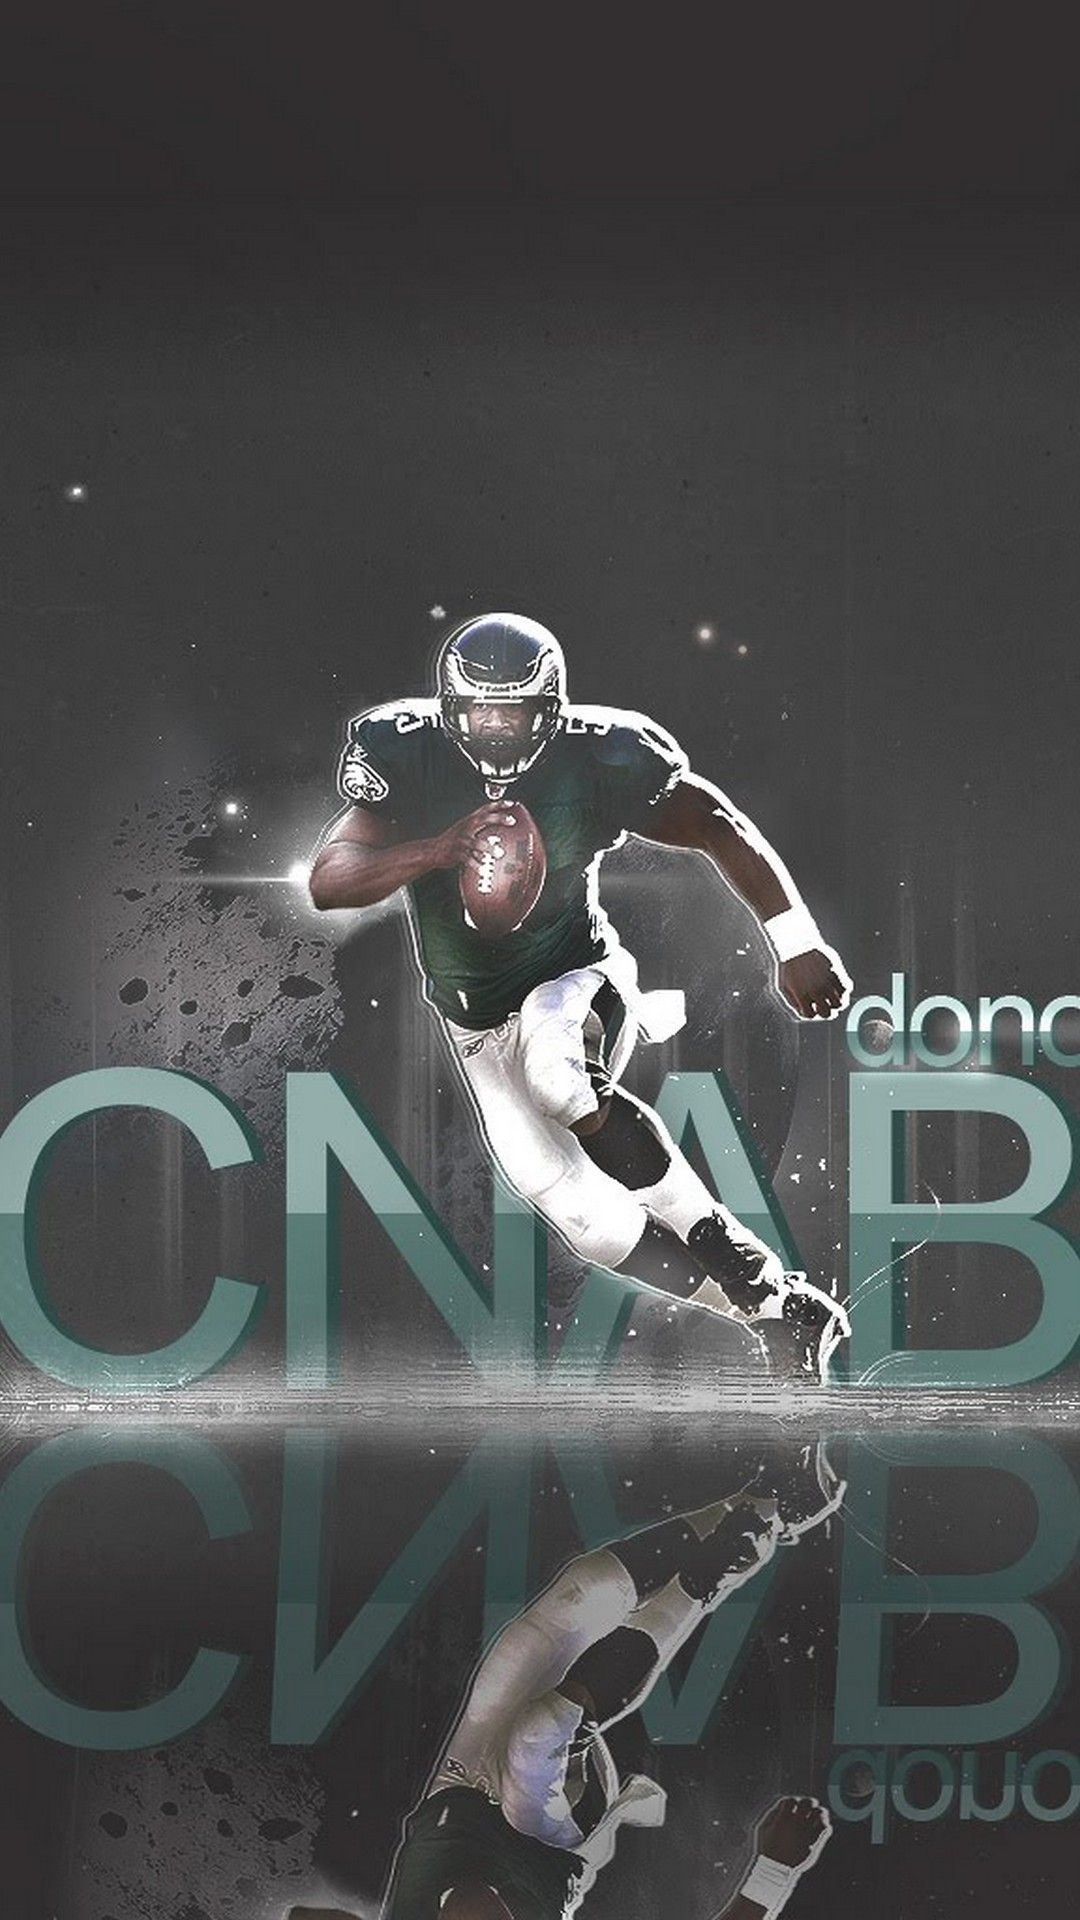 NFL Eagles HD Wallpaper For iPhone Hd wallpaper android